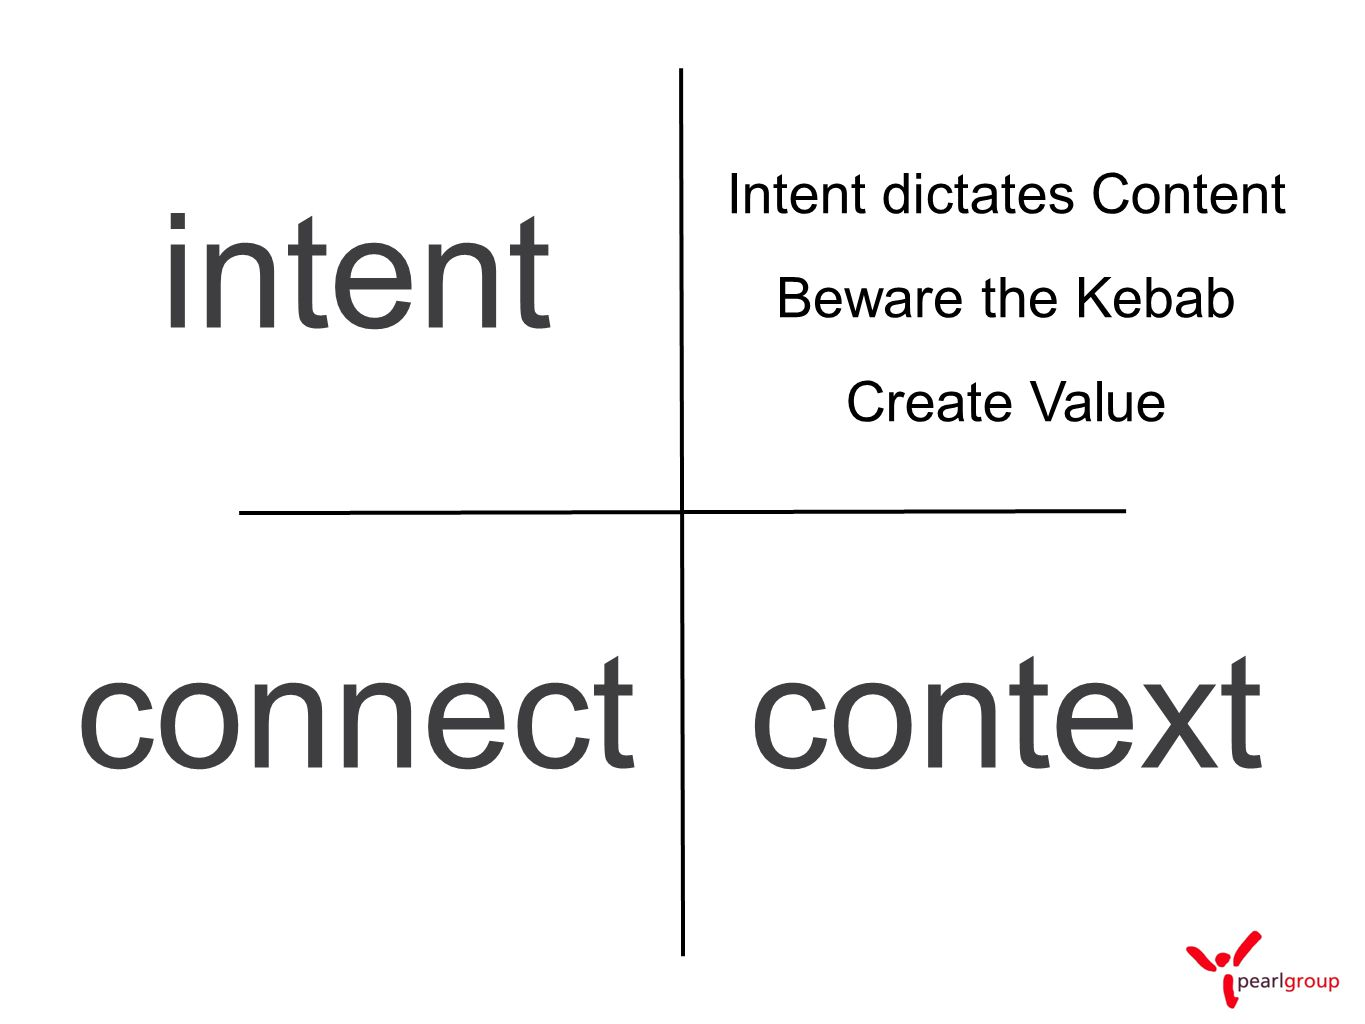 investing in technology and over using it intent connectcontext Intent dictates Content Create Value Beware the Kebab